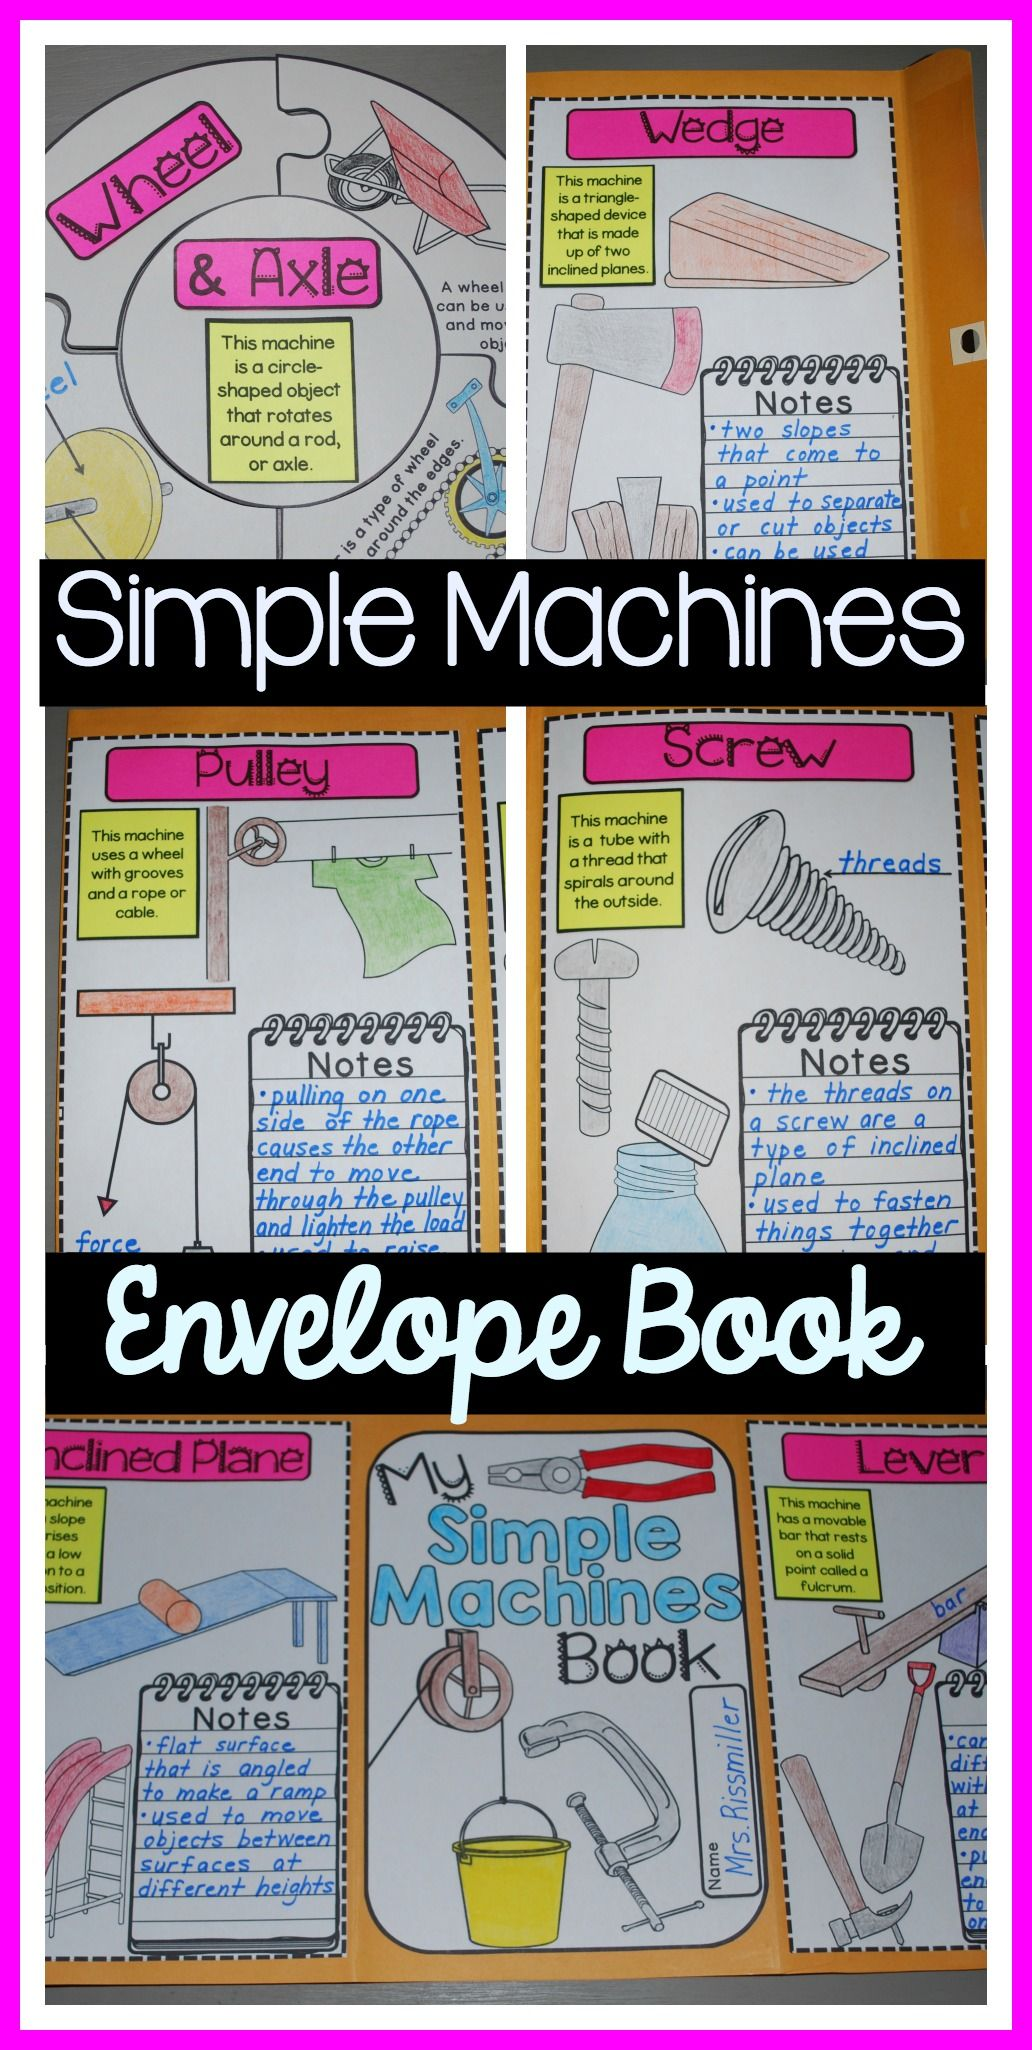 Simple Machines Worksheets For 6th Grade   Printable Worksheets and  Activities for Teachers [ 2050 x 1032 Pixel ]